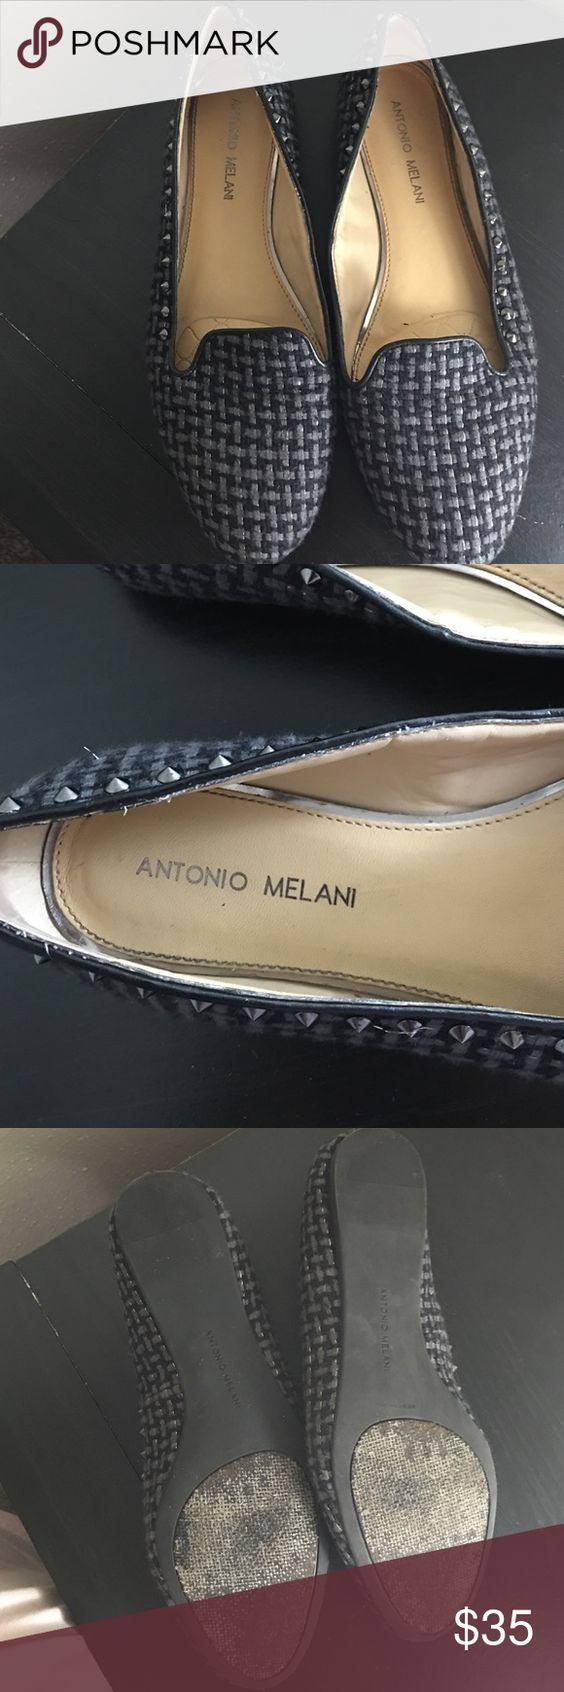 Antonio Melanie flats [ no box] Used 4 times ANTONIO MELANI Shoes Wedges